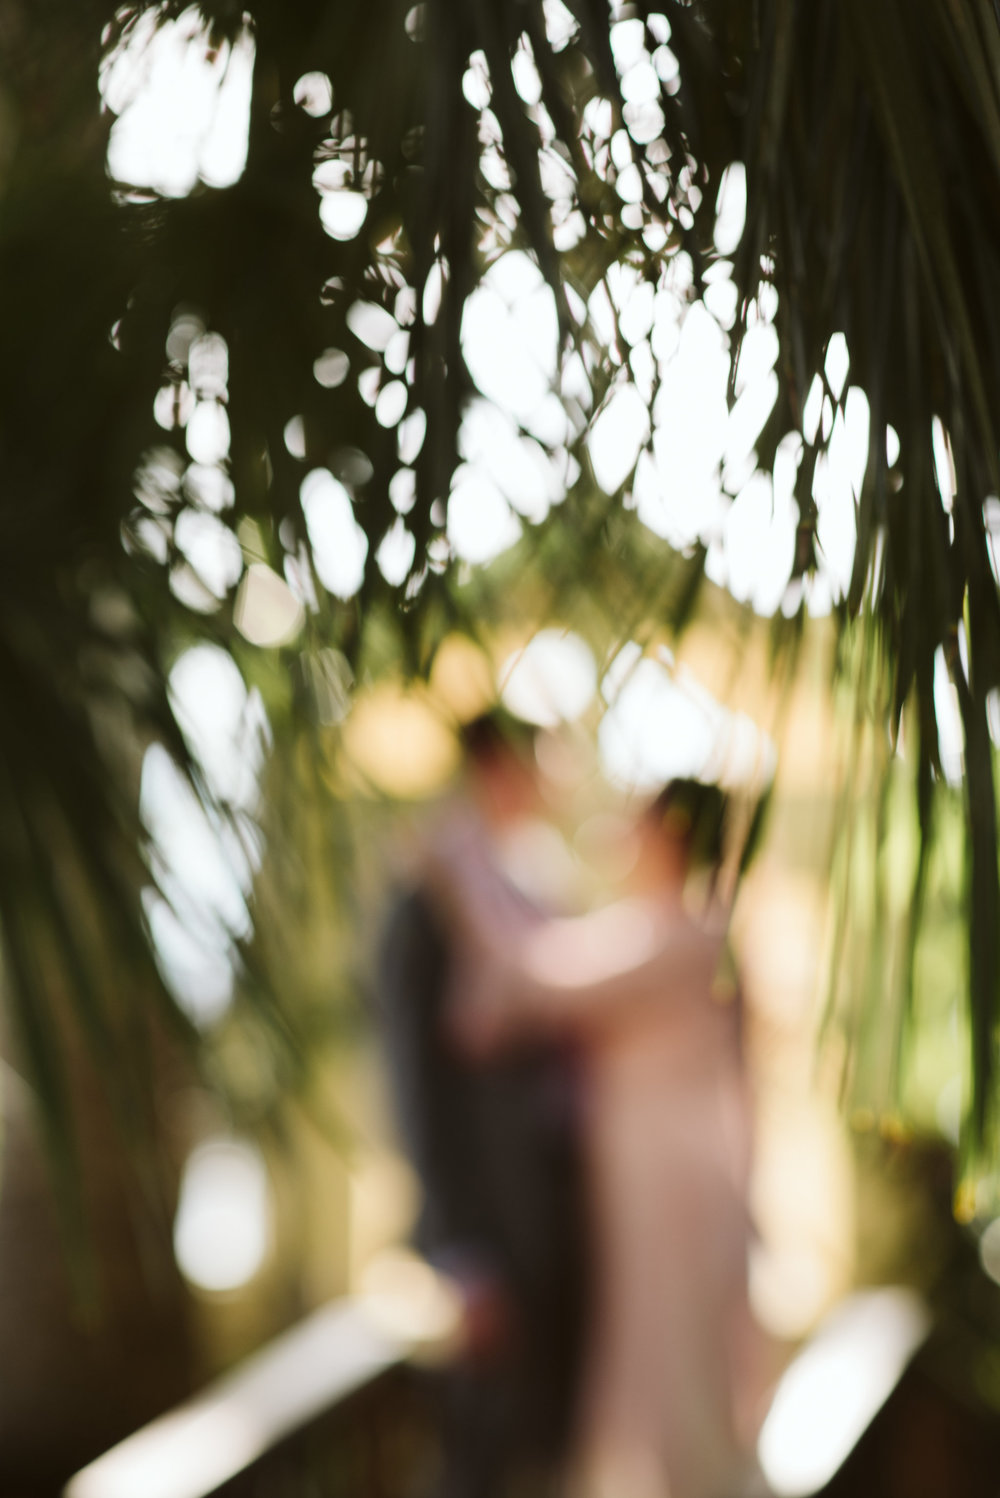 Elopement, Baltimore, Rawlings Conservatory, Greenhouse, Maryland Wedding Photographer, Indian American, Nature, Romantic, Garden, Pink Sari, Braids, Bride and Groom, Out of Focus, Candid Photo